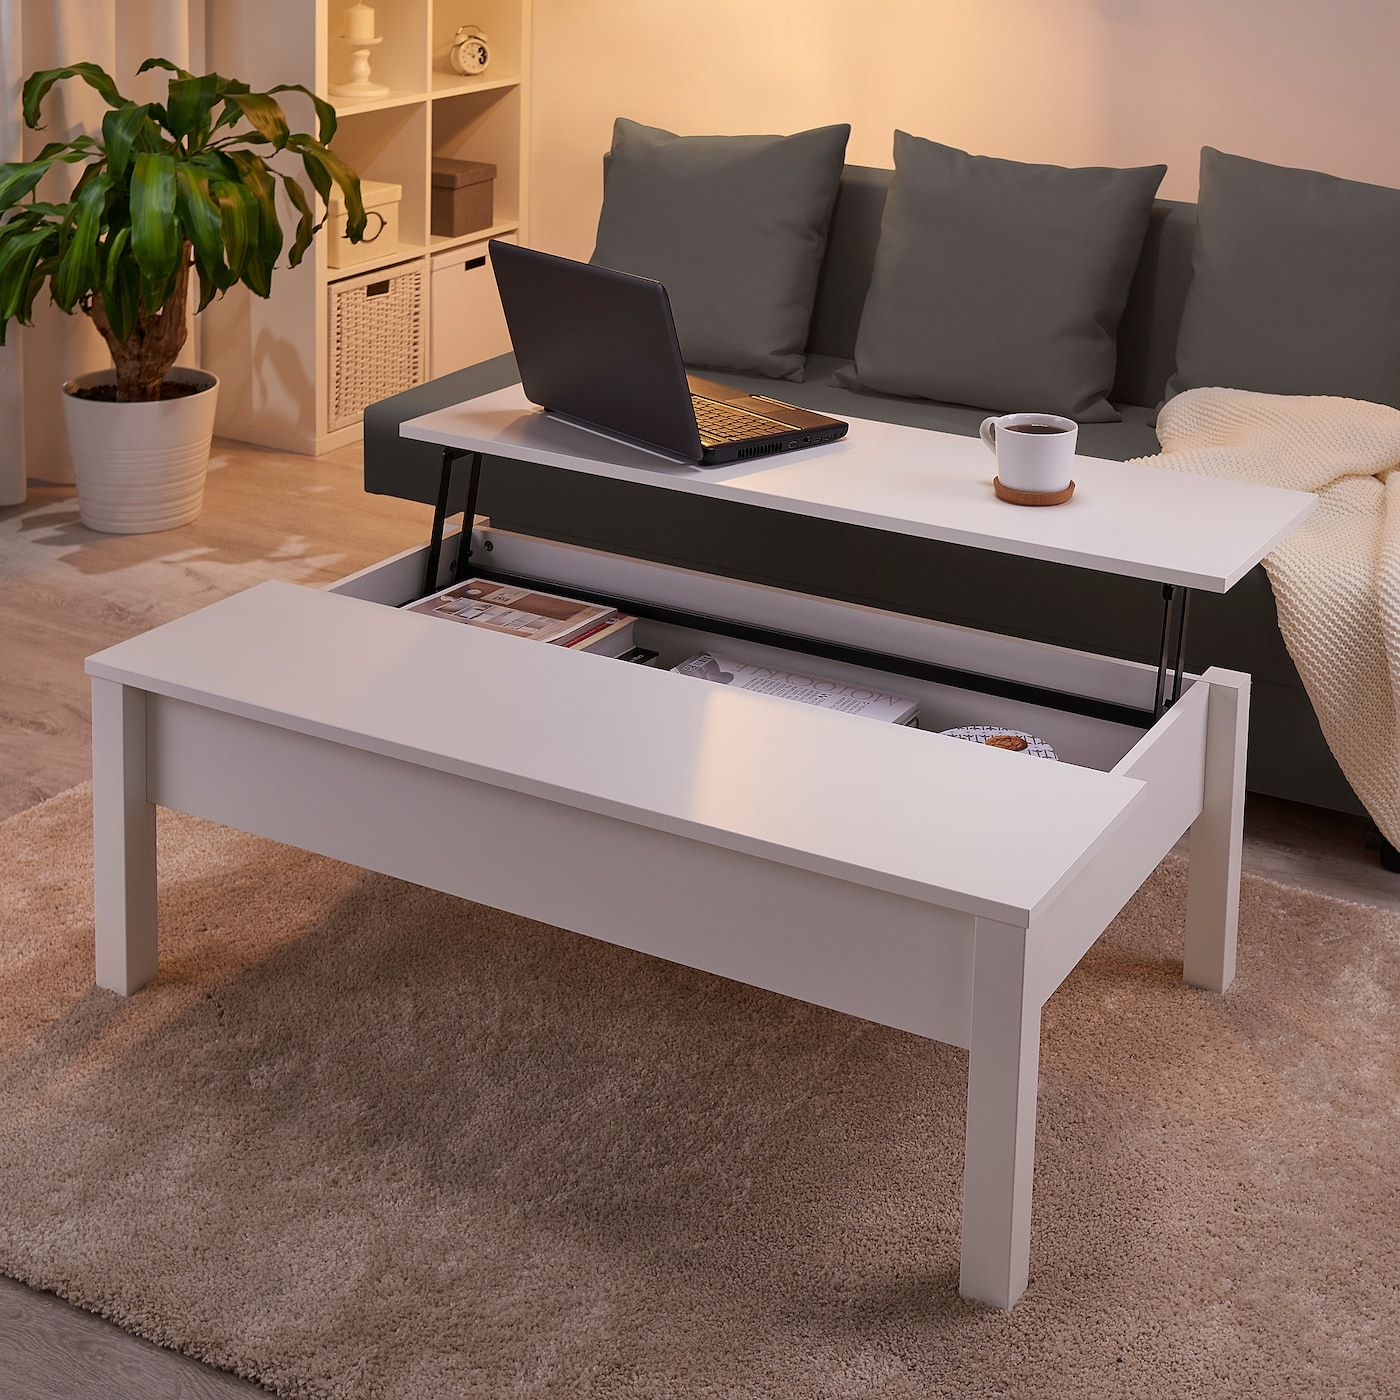 Trulstorp Coffee Table White 45 1 4x27 1 2 White Coffee